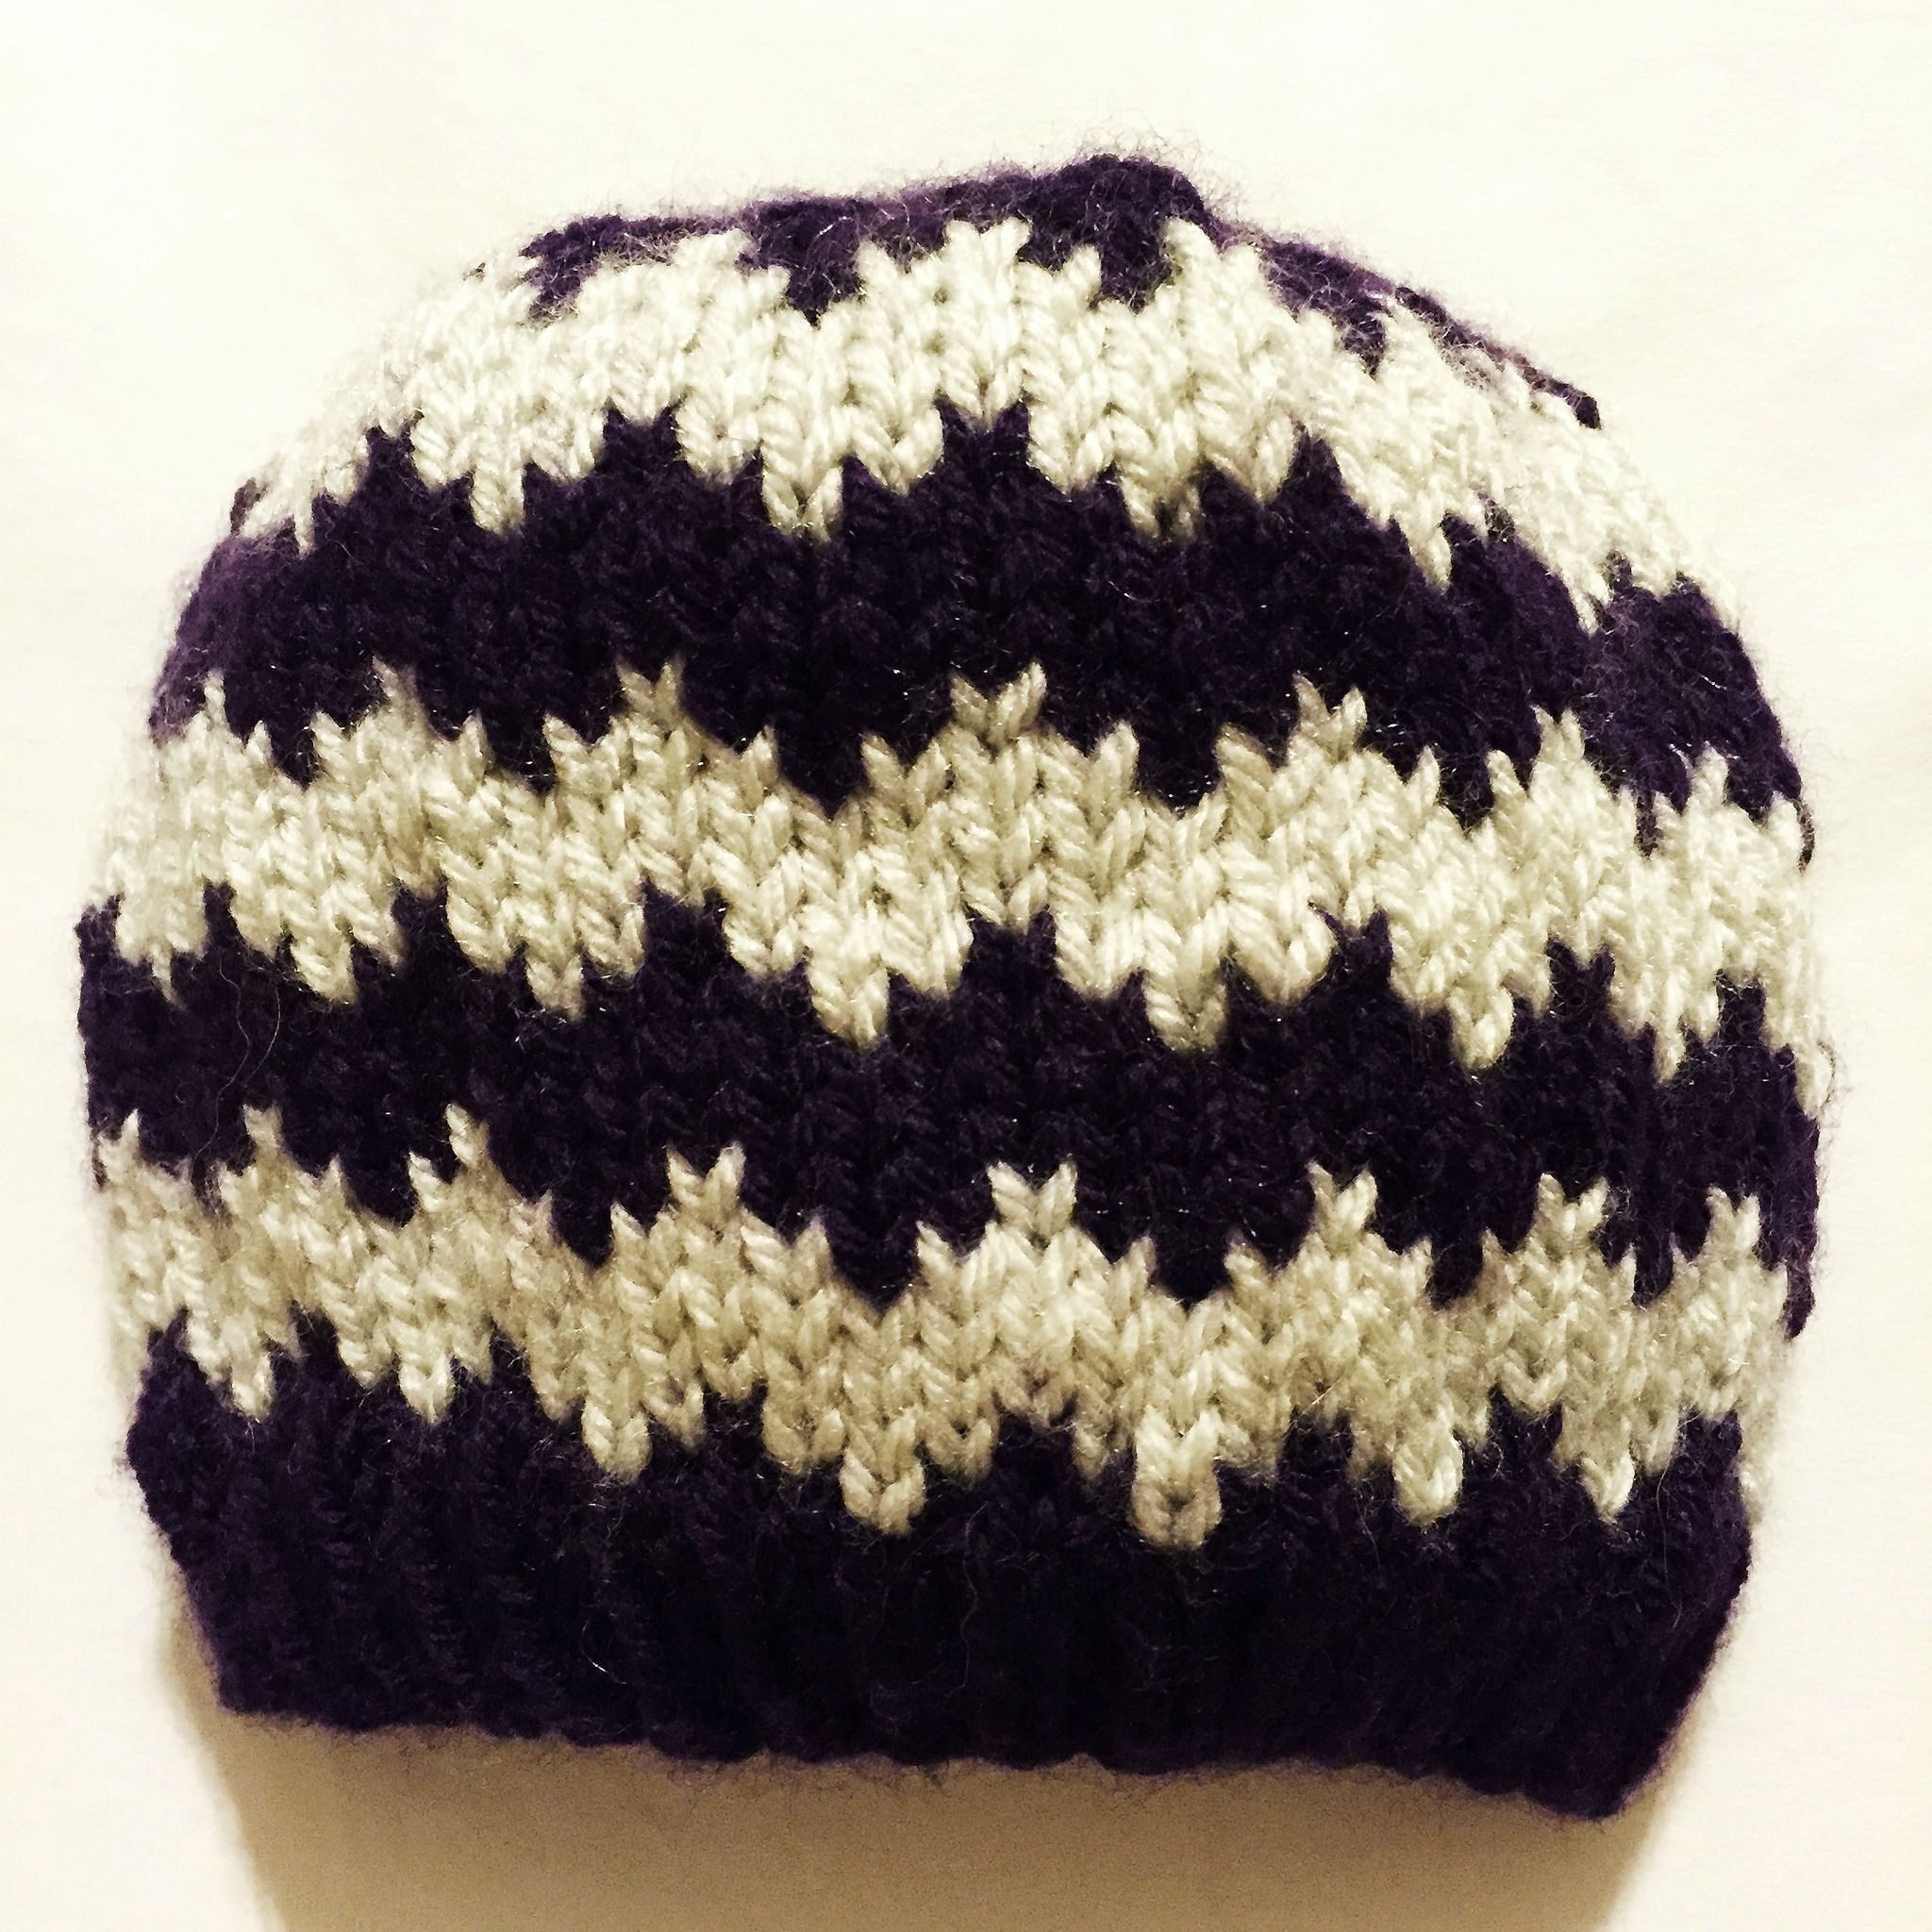 Free pattern for chevron knit baby hat great for donating to free pattern for chevron knit baby hat great for donating to click for babies bankloansurffo Image collections